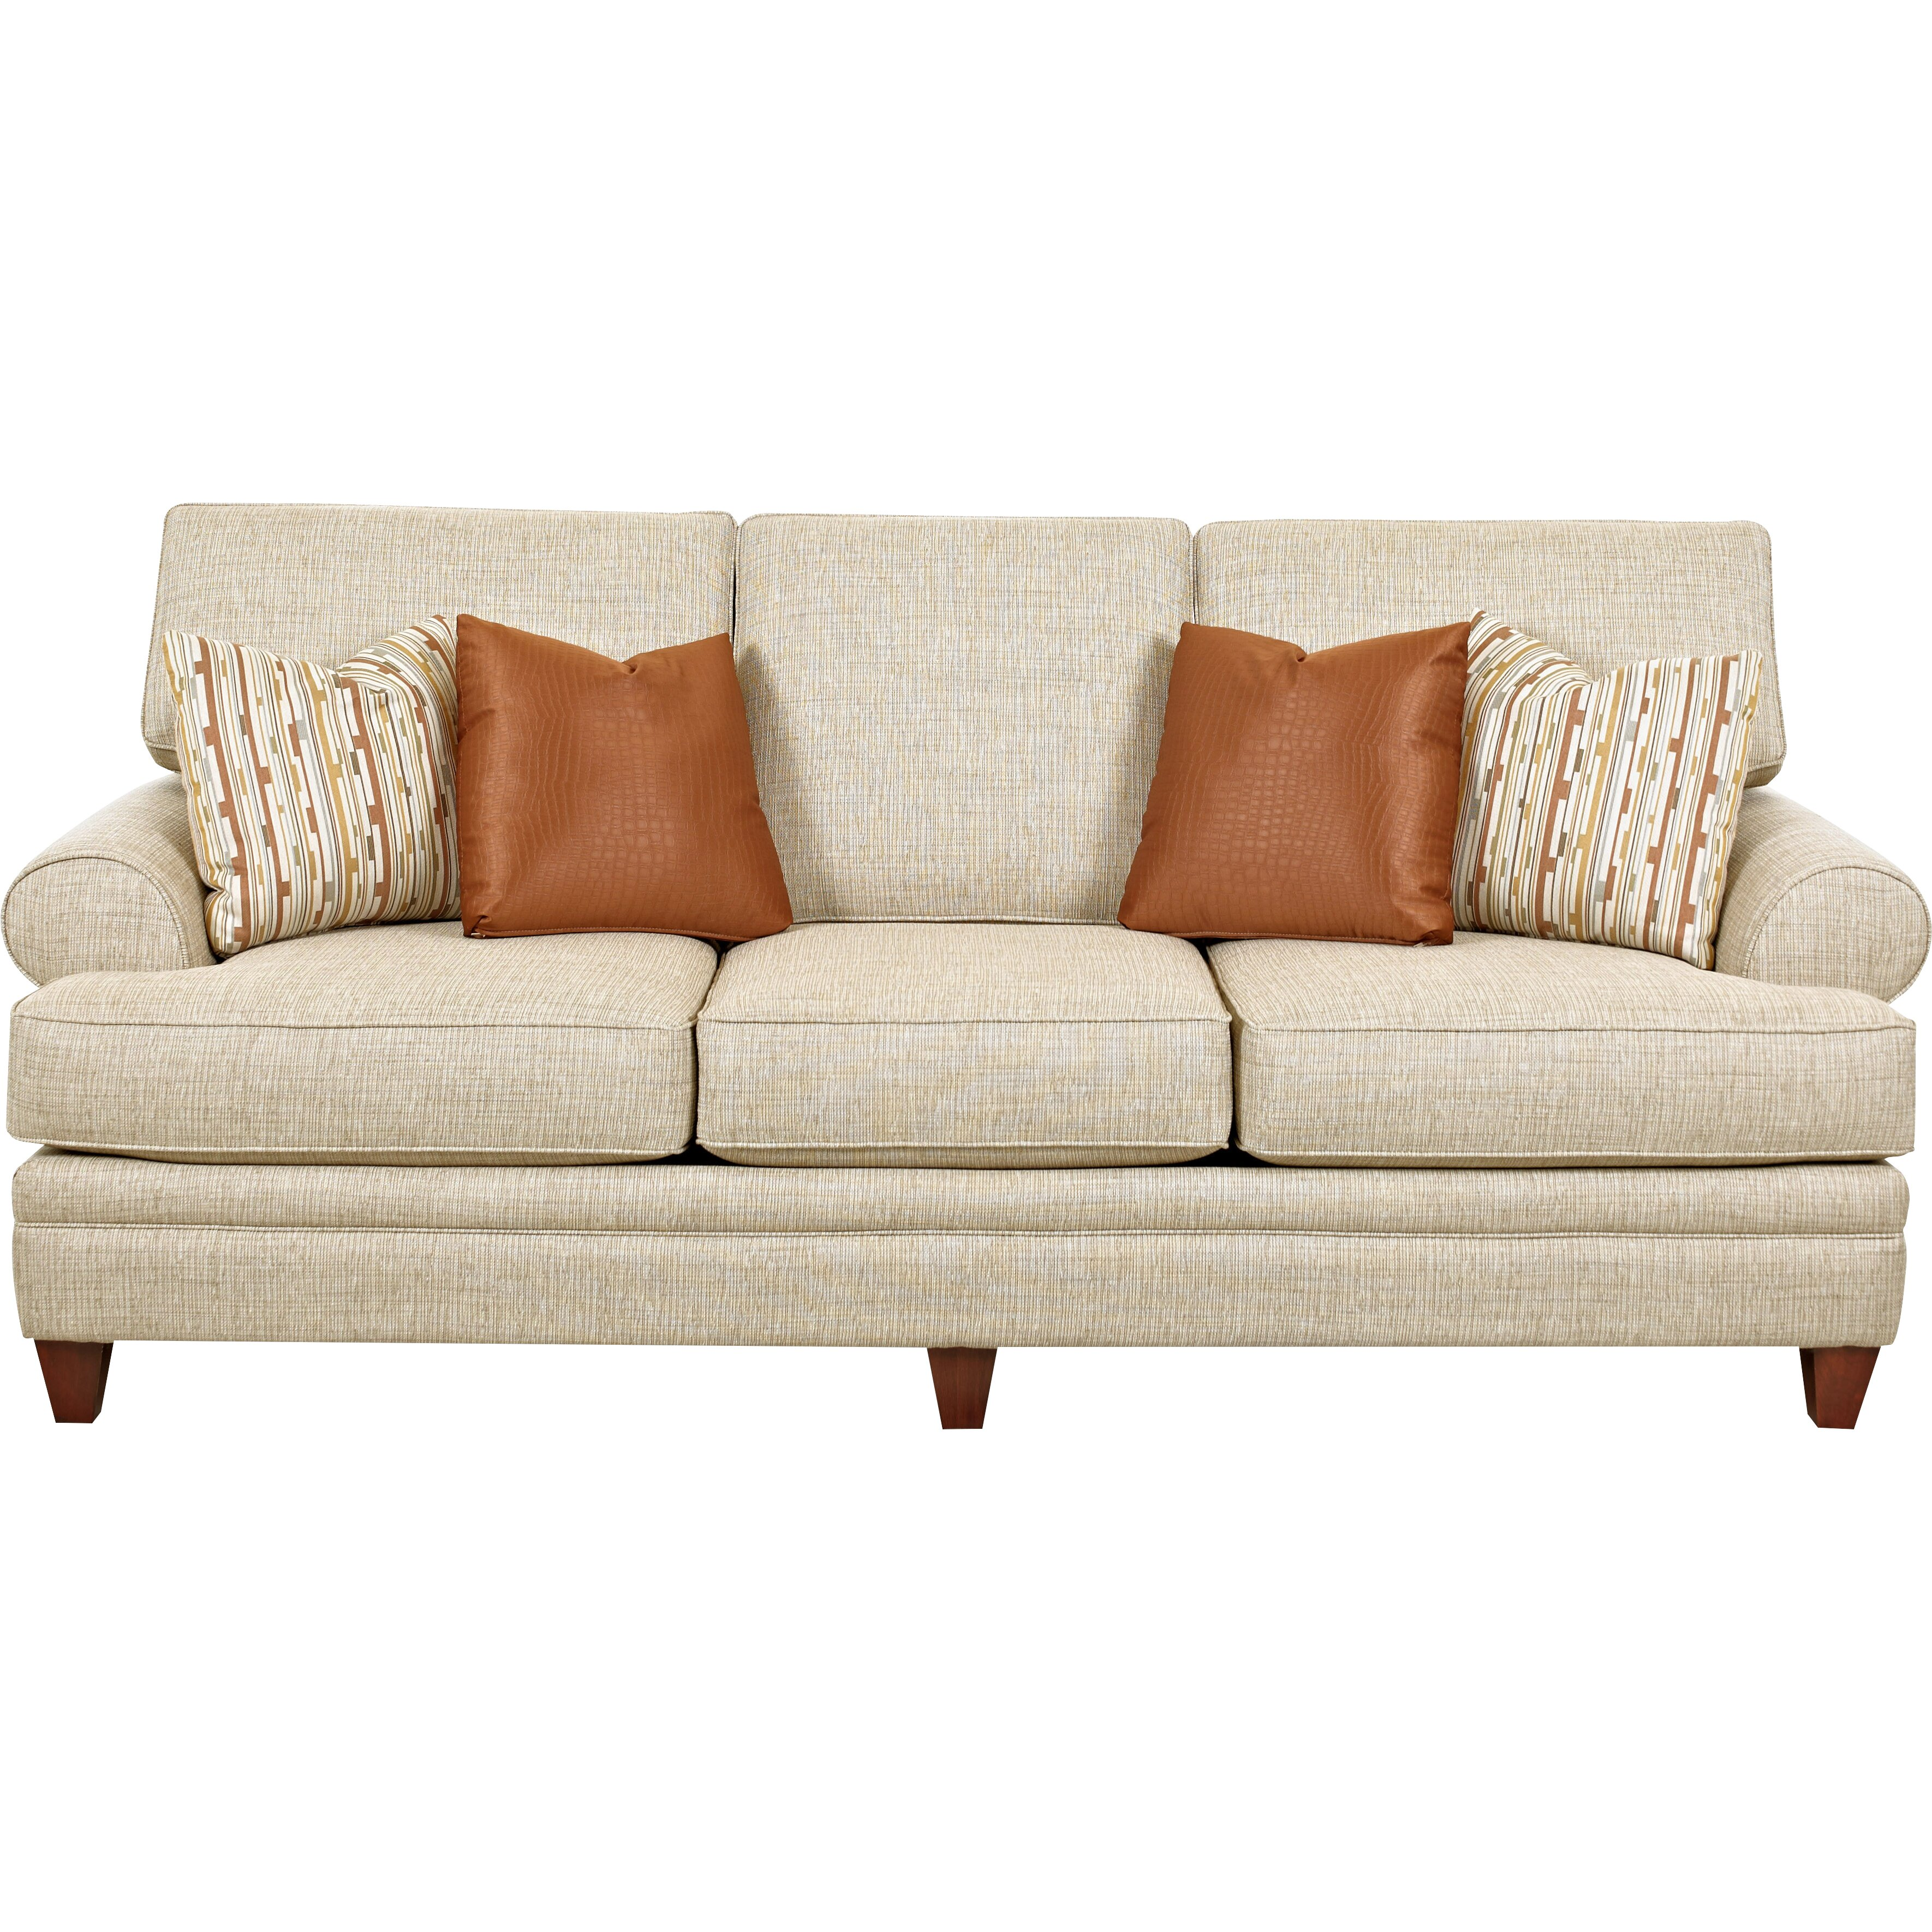 Living Room Collection Furniture Klaussner Furniture Clayton Living Room Collection Reviews Wayfair